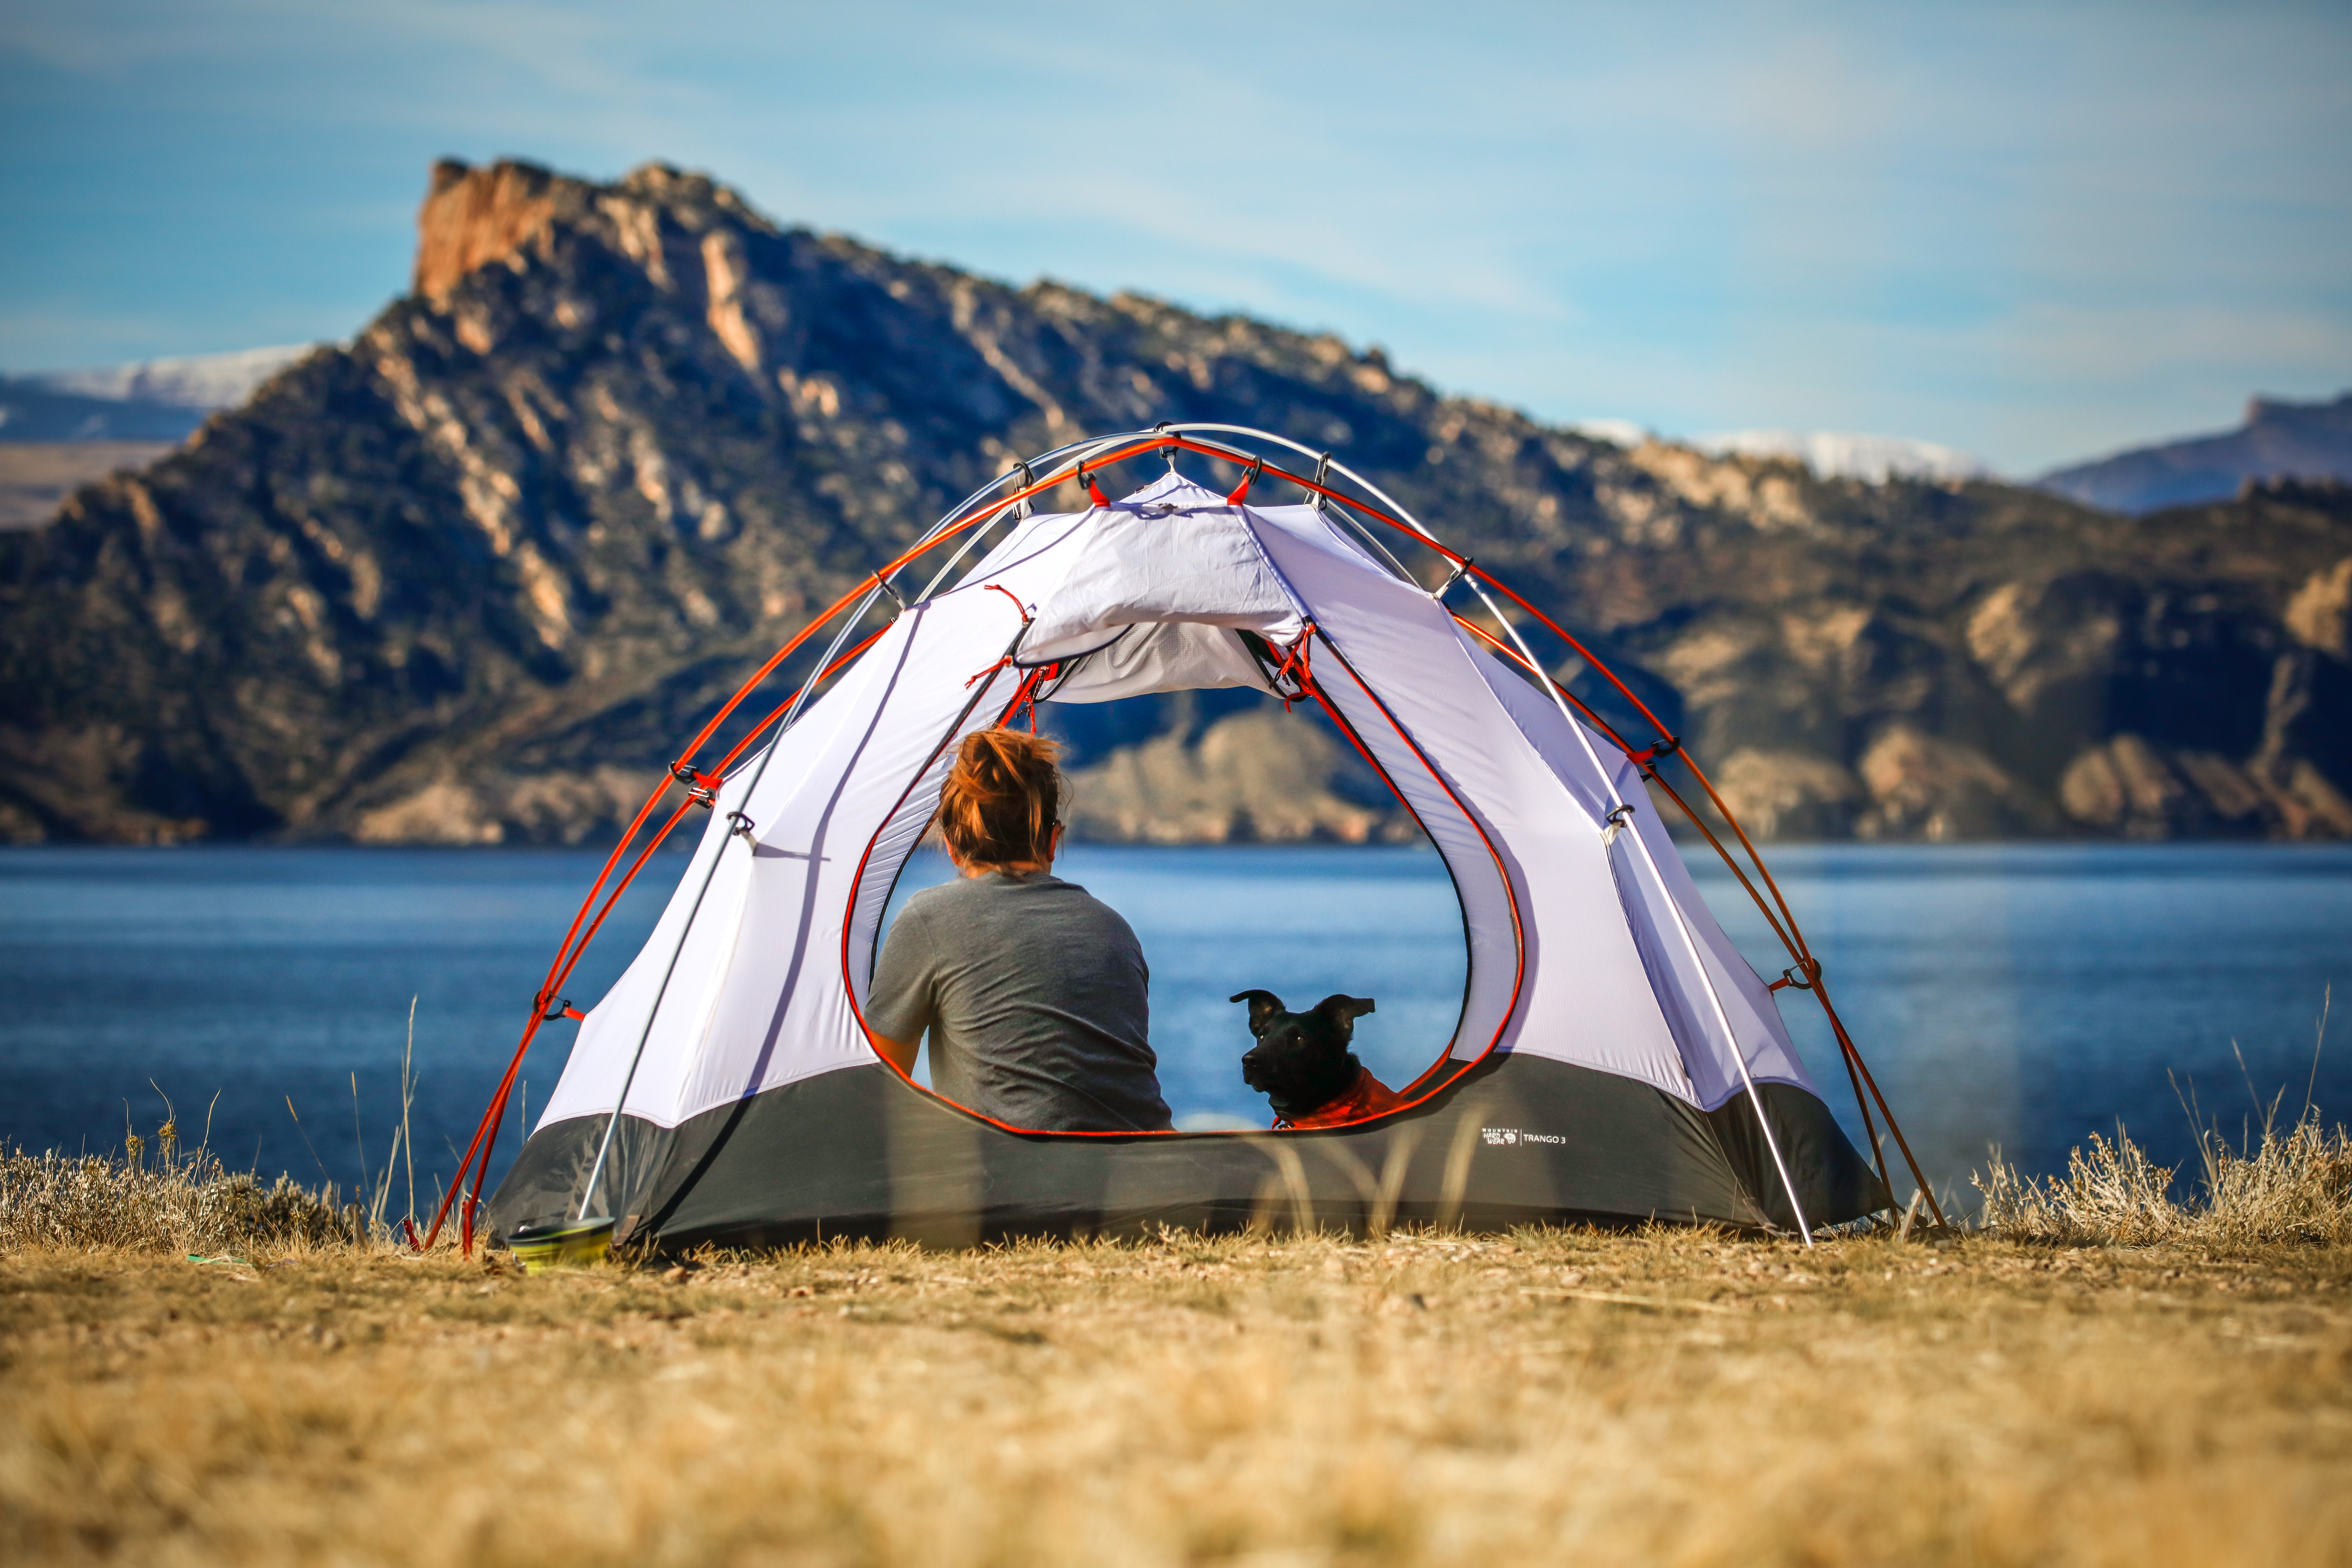 Tent camping on a lakeside